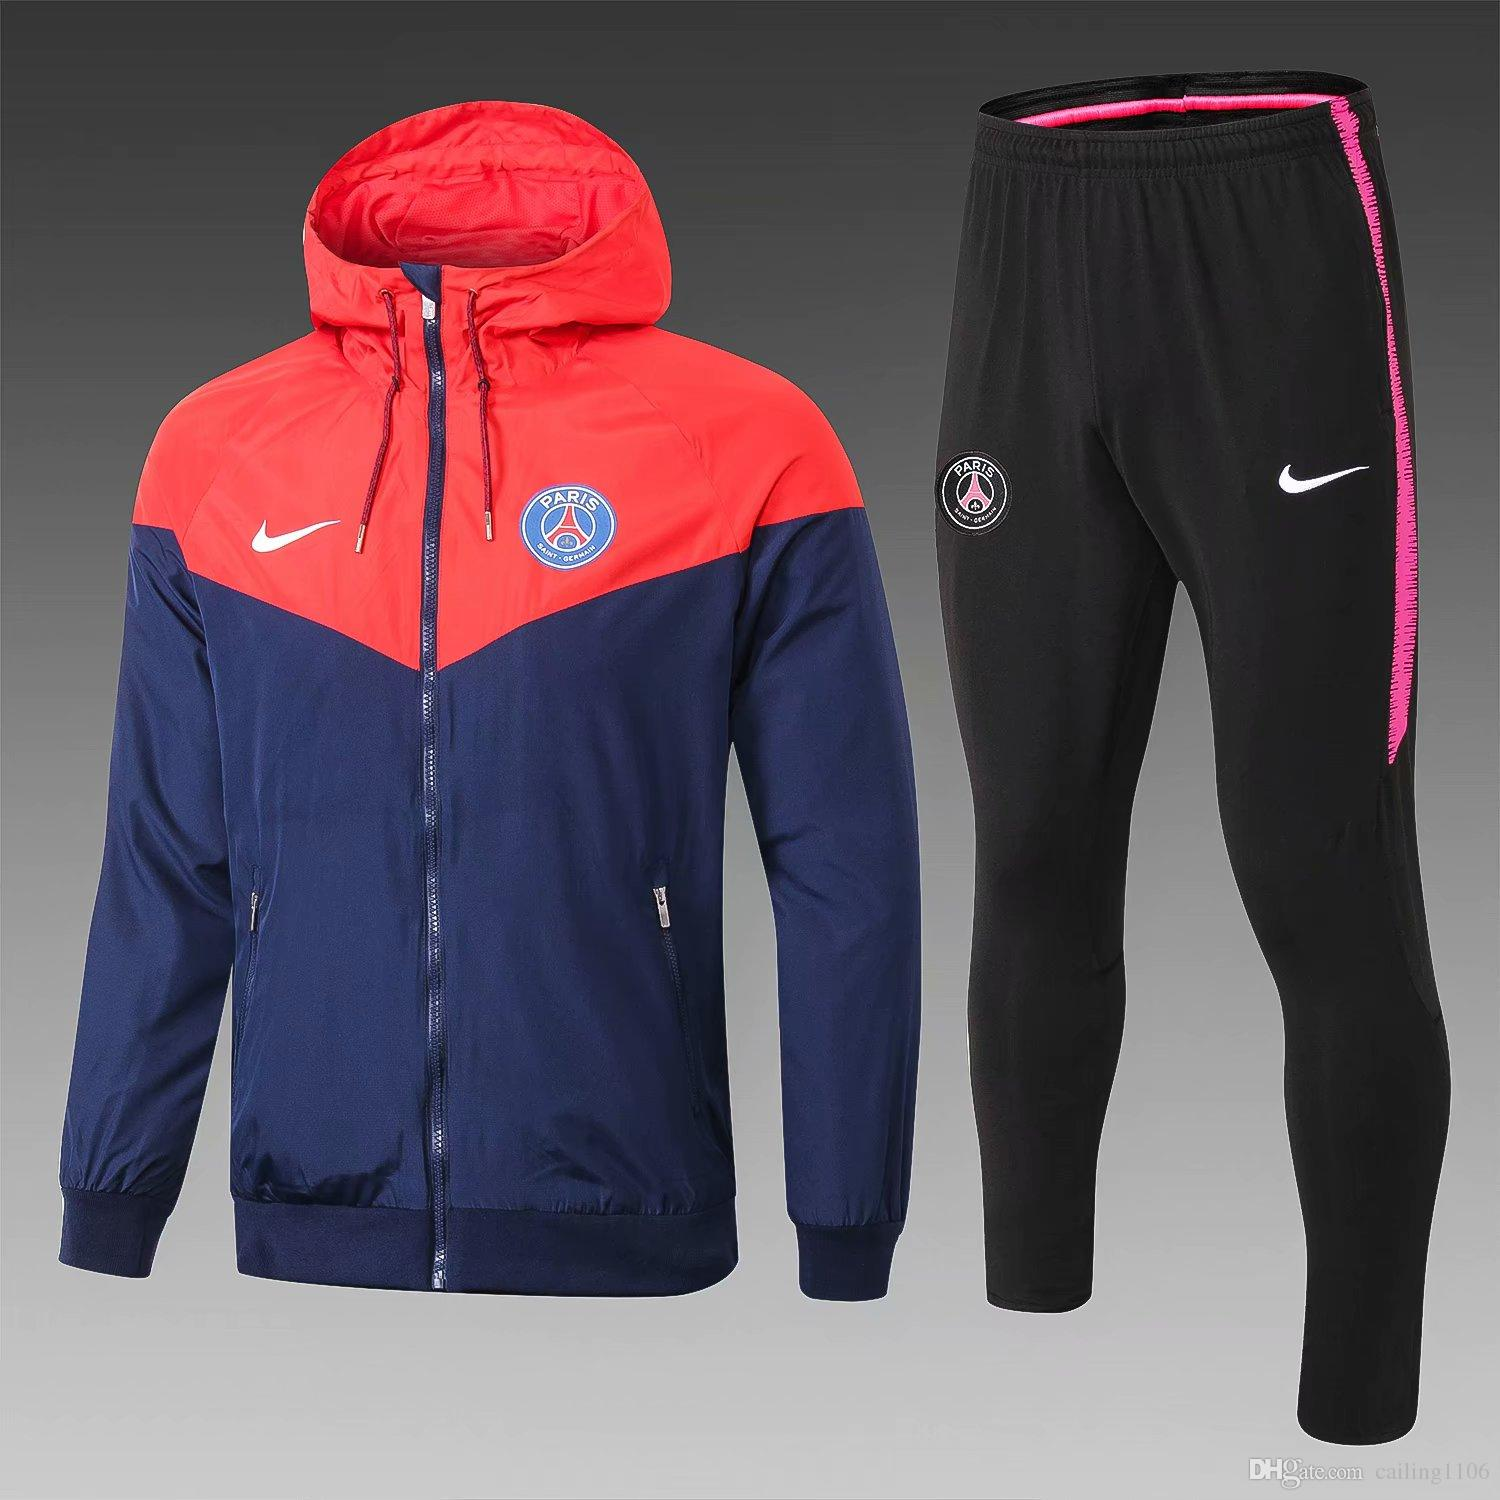 check out bceee 09f12 MC 2018/19 PSG hoodies football clothes Barcelona football shirts 2019  Paris st germain football jacket within PSG omar MBAPPE Survetement